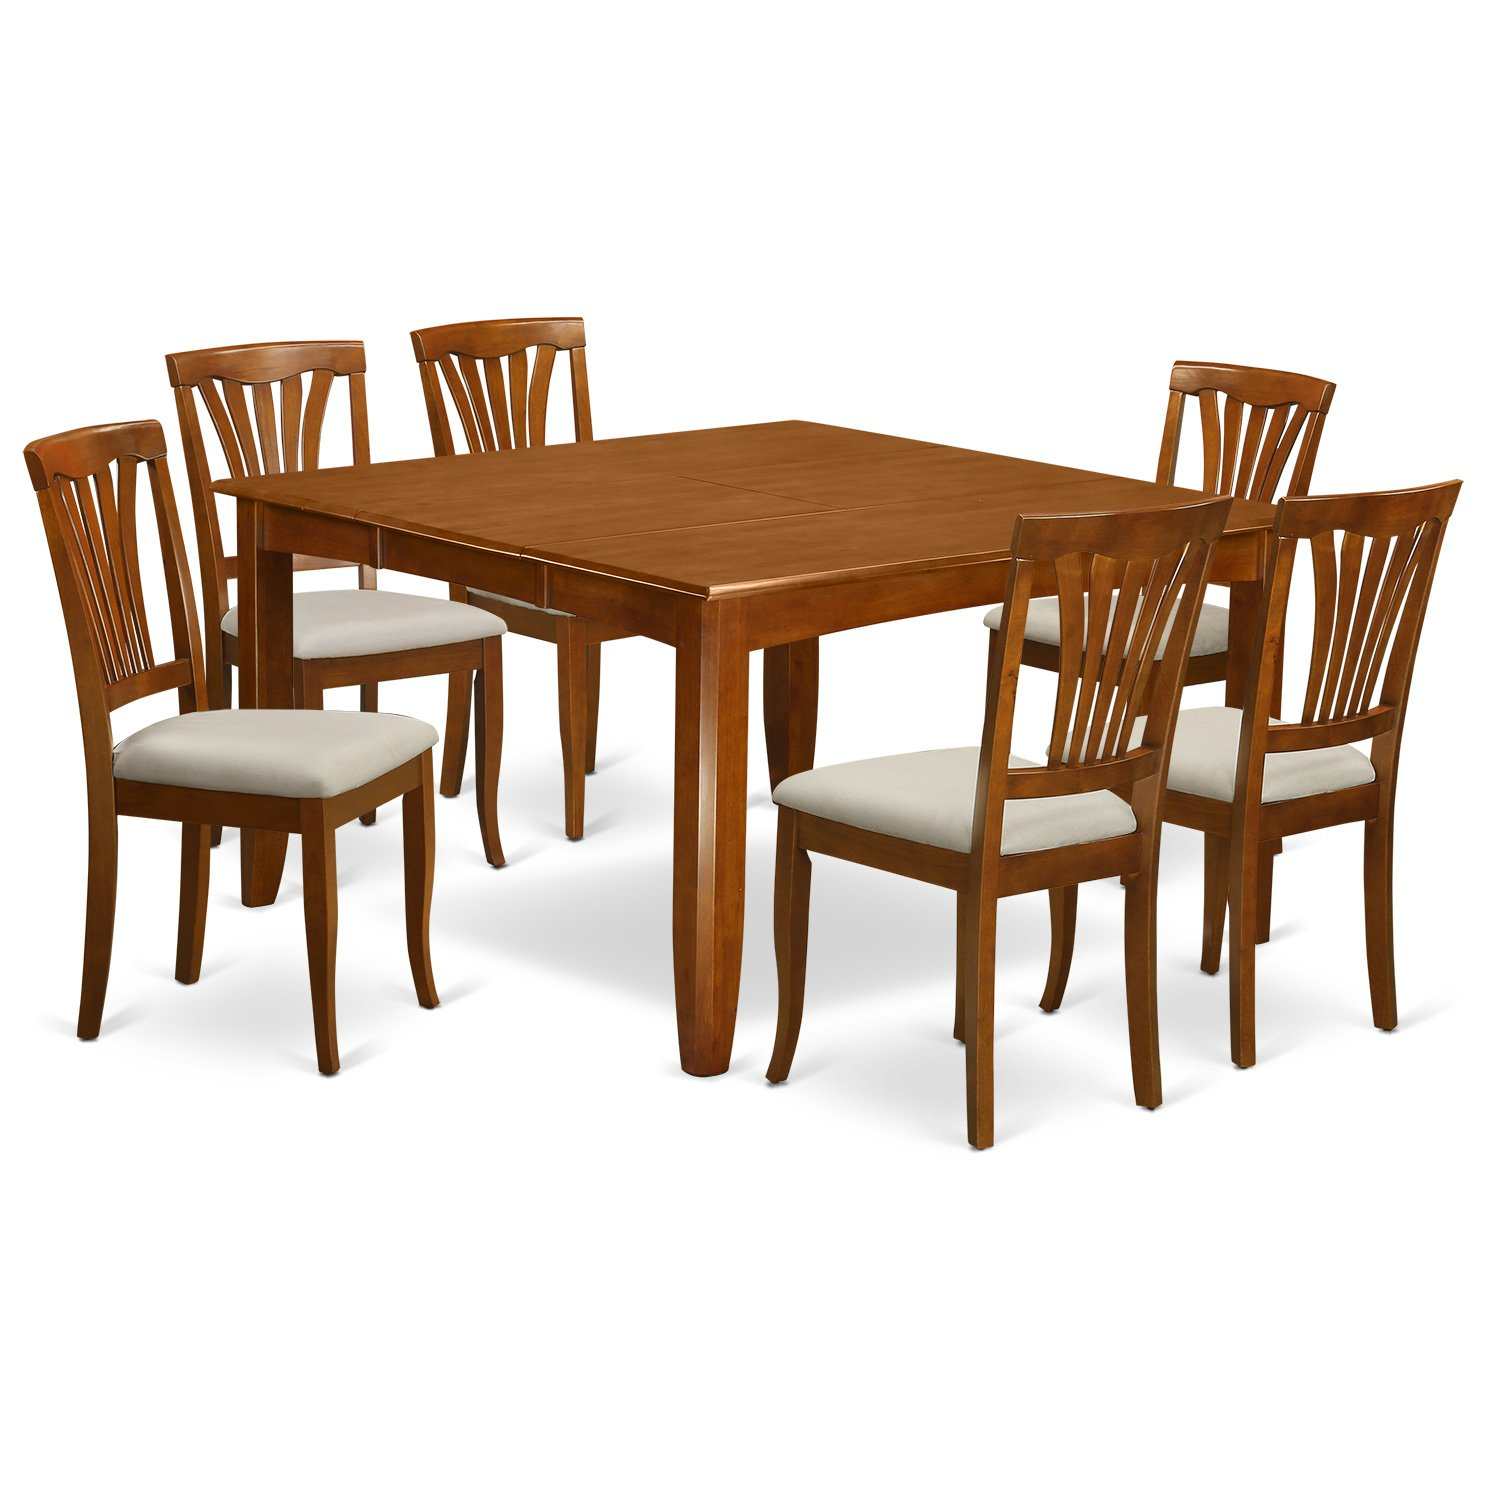 East West Furniture PFAV7-SBR-C 7-Piece Dining Table Set